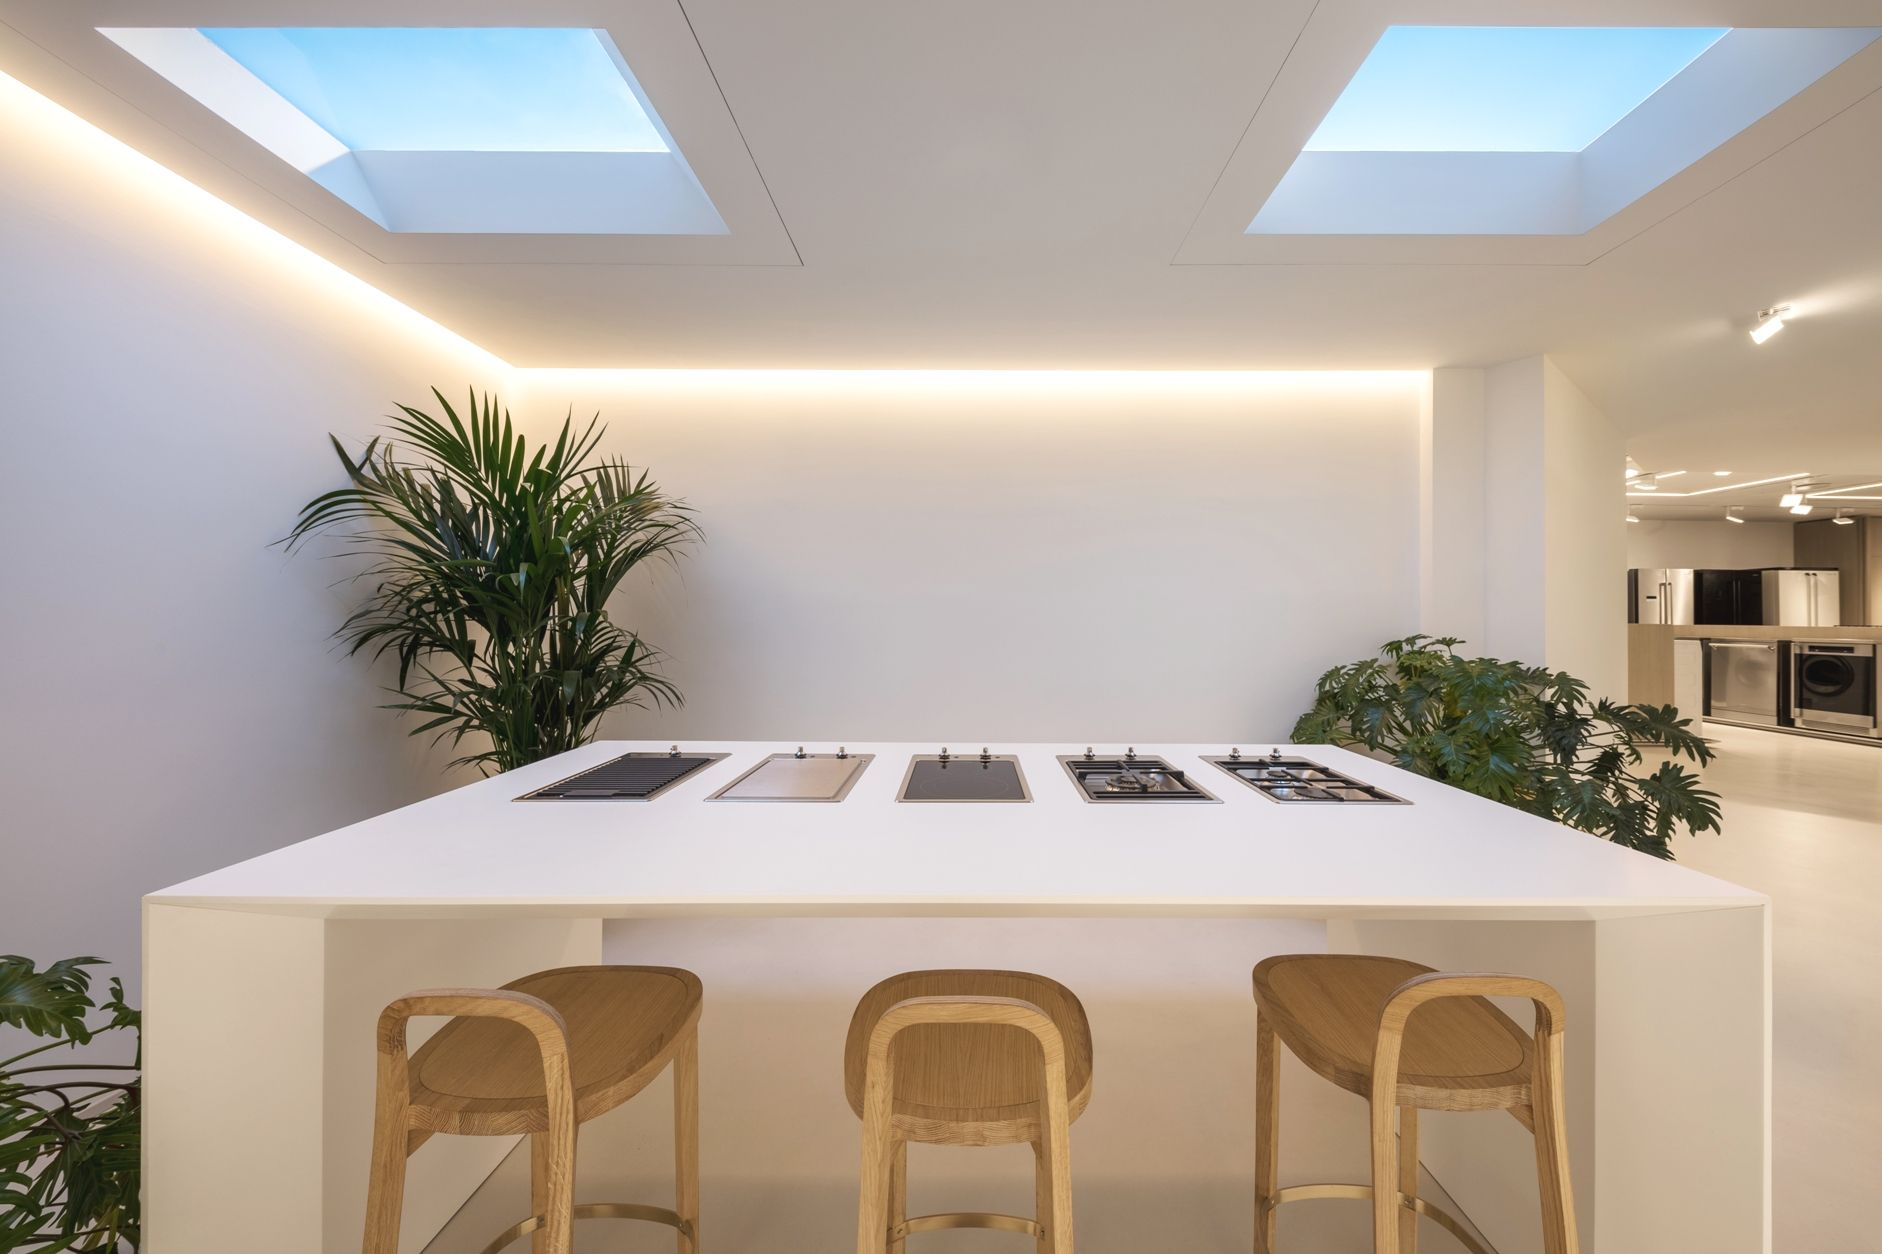 Lighting Technology That Goes Beyond Form And Function And Can Make Any Kitchen Sunny The Coelux Artificial Skylights Skylight Residential Design House Design